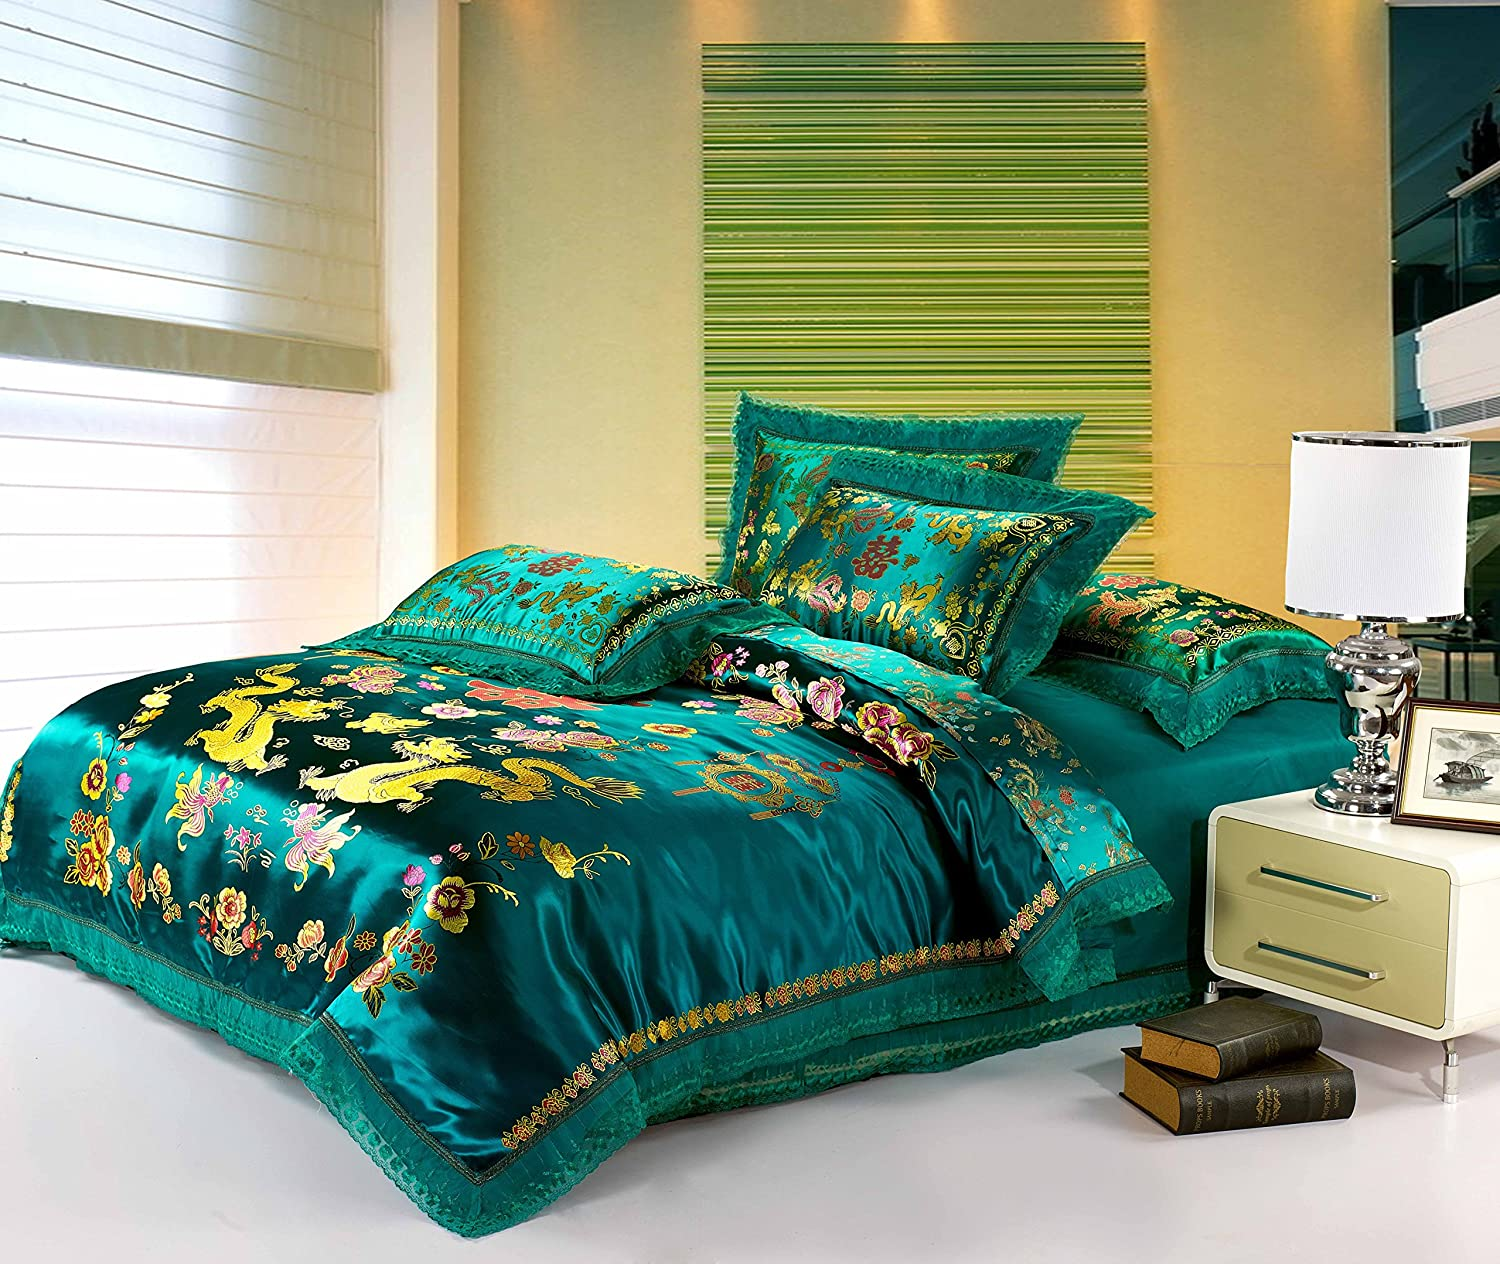 Dragon bedroom dragon decor ideas dragon bedding sets ccuart Image collections